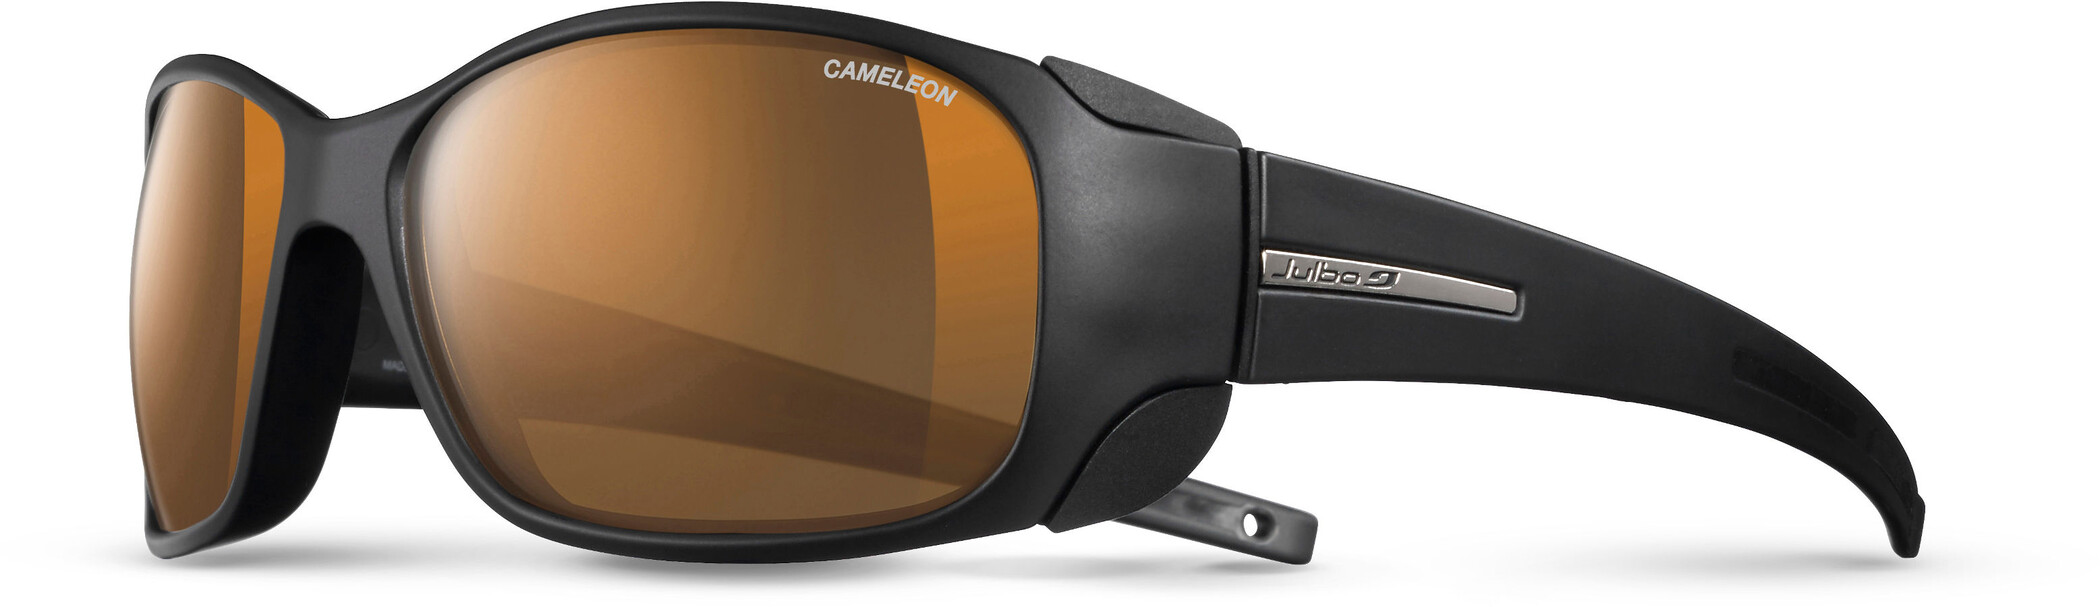 s www campz de black diamond dynex daisy chain 115cmjulbo_monterosa_cameleon_sunglasses_women_matt_black_black brown jpg